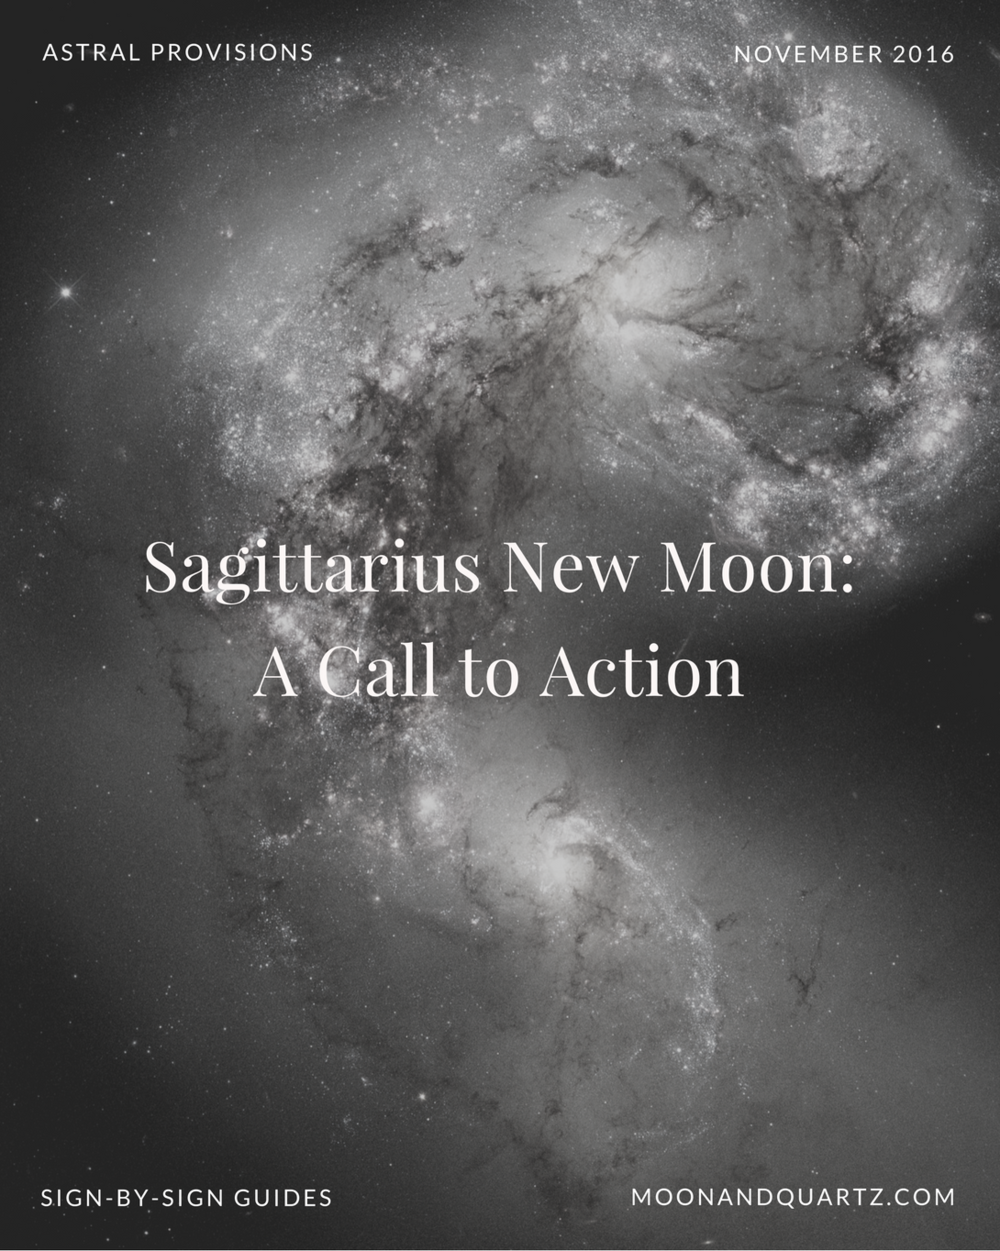 The New Moon in Sagittarius,exact at 4:18am Tuesday, presents an opportunity to expand our understanding of what's possible through our exposure to and incorporation of the new.The Moon Guides are available now (and free to subscribers!) with guidance for each of the twelve signs as well as a fresh new ritual I'm hoping you'll join in with me over the next few months. Click through to download and read more about the Sagittarius New Moon.